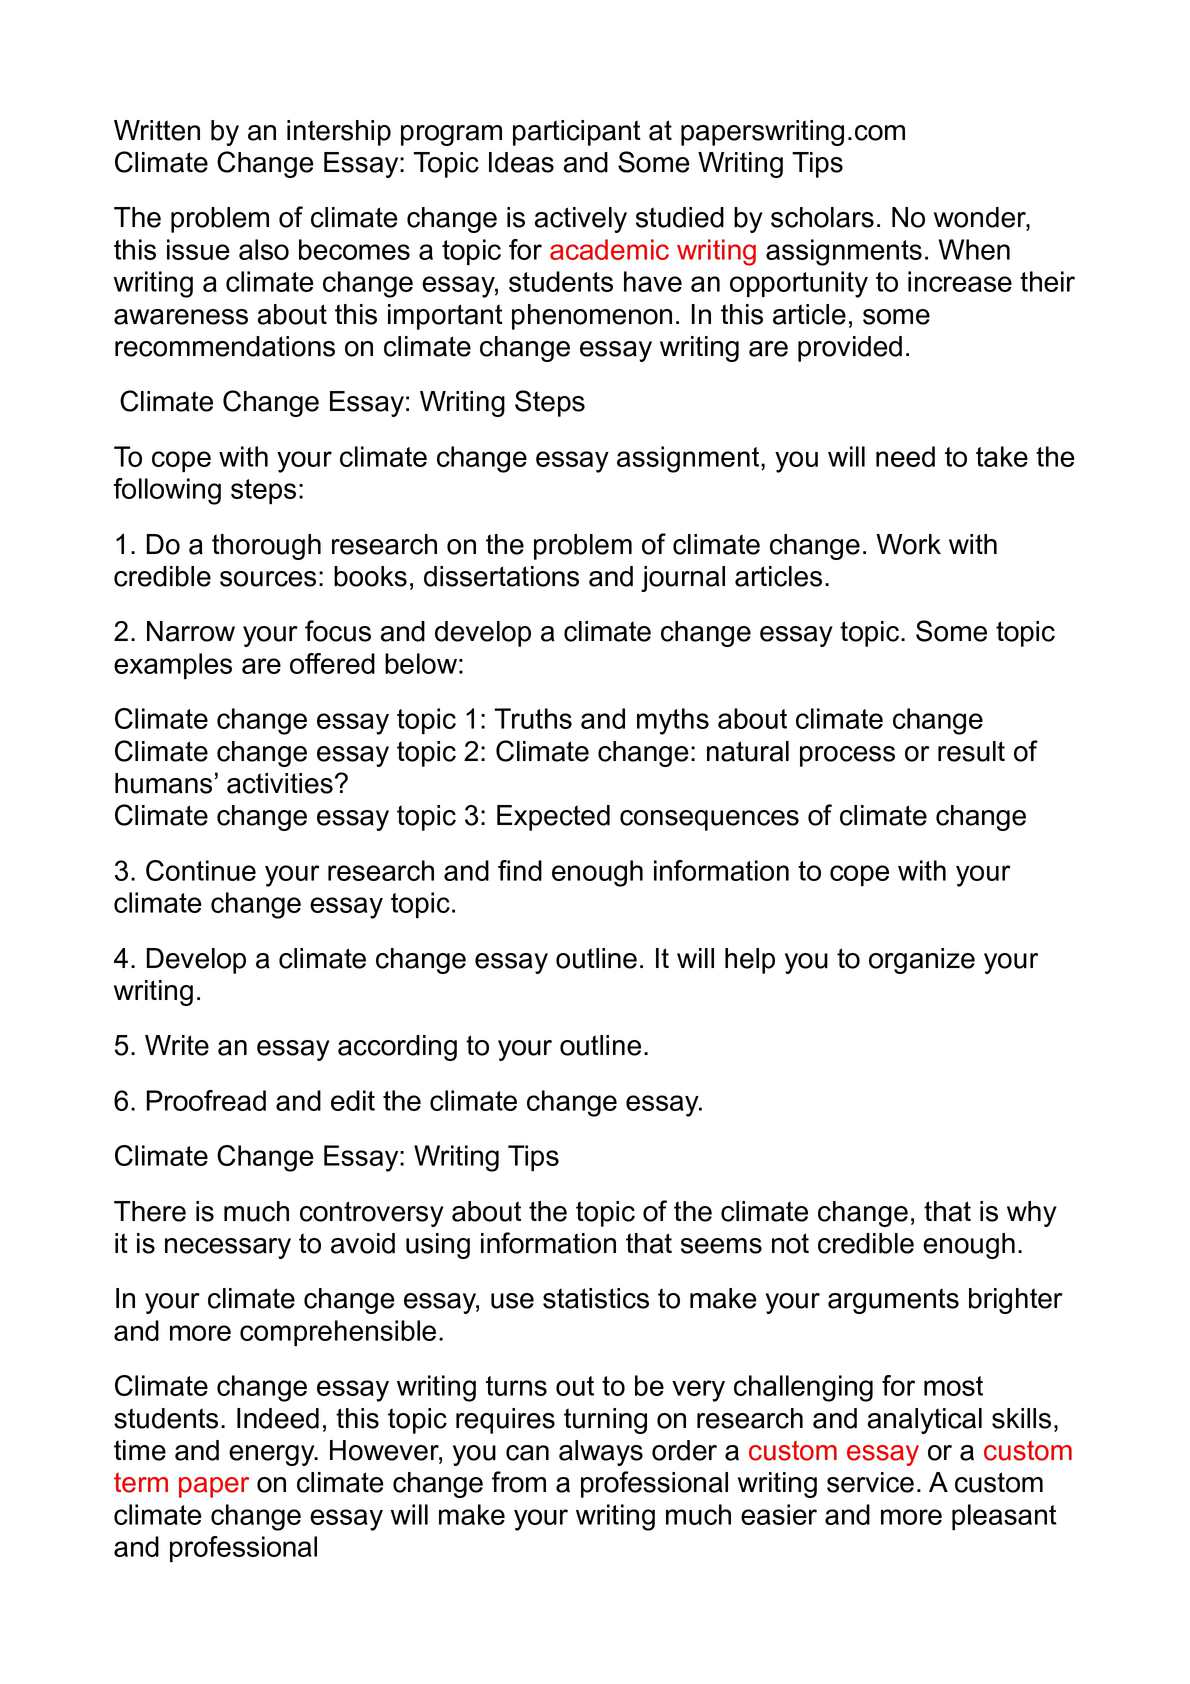 Essay about climate changes